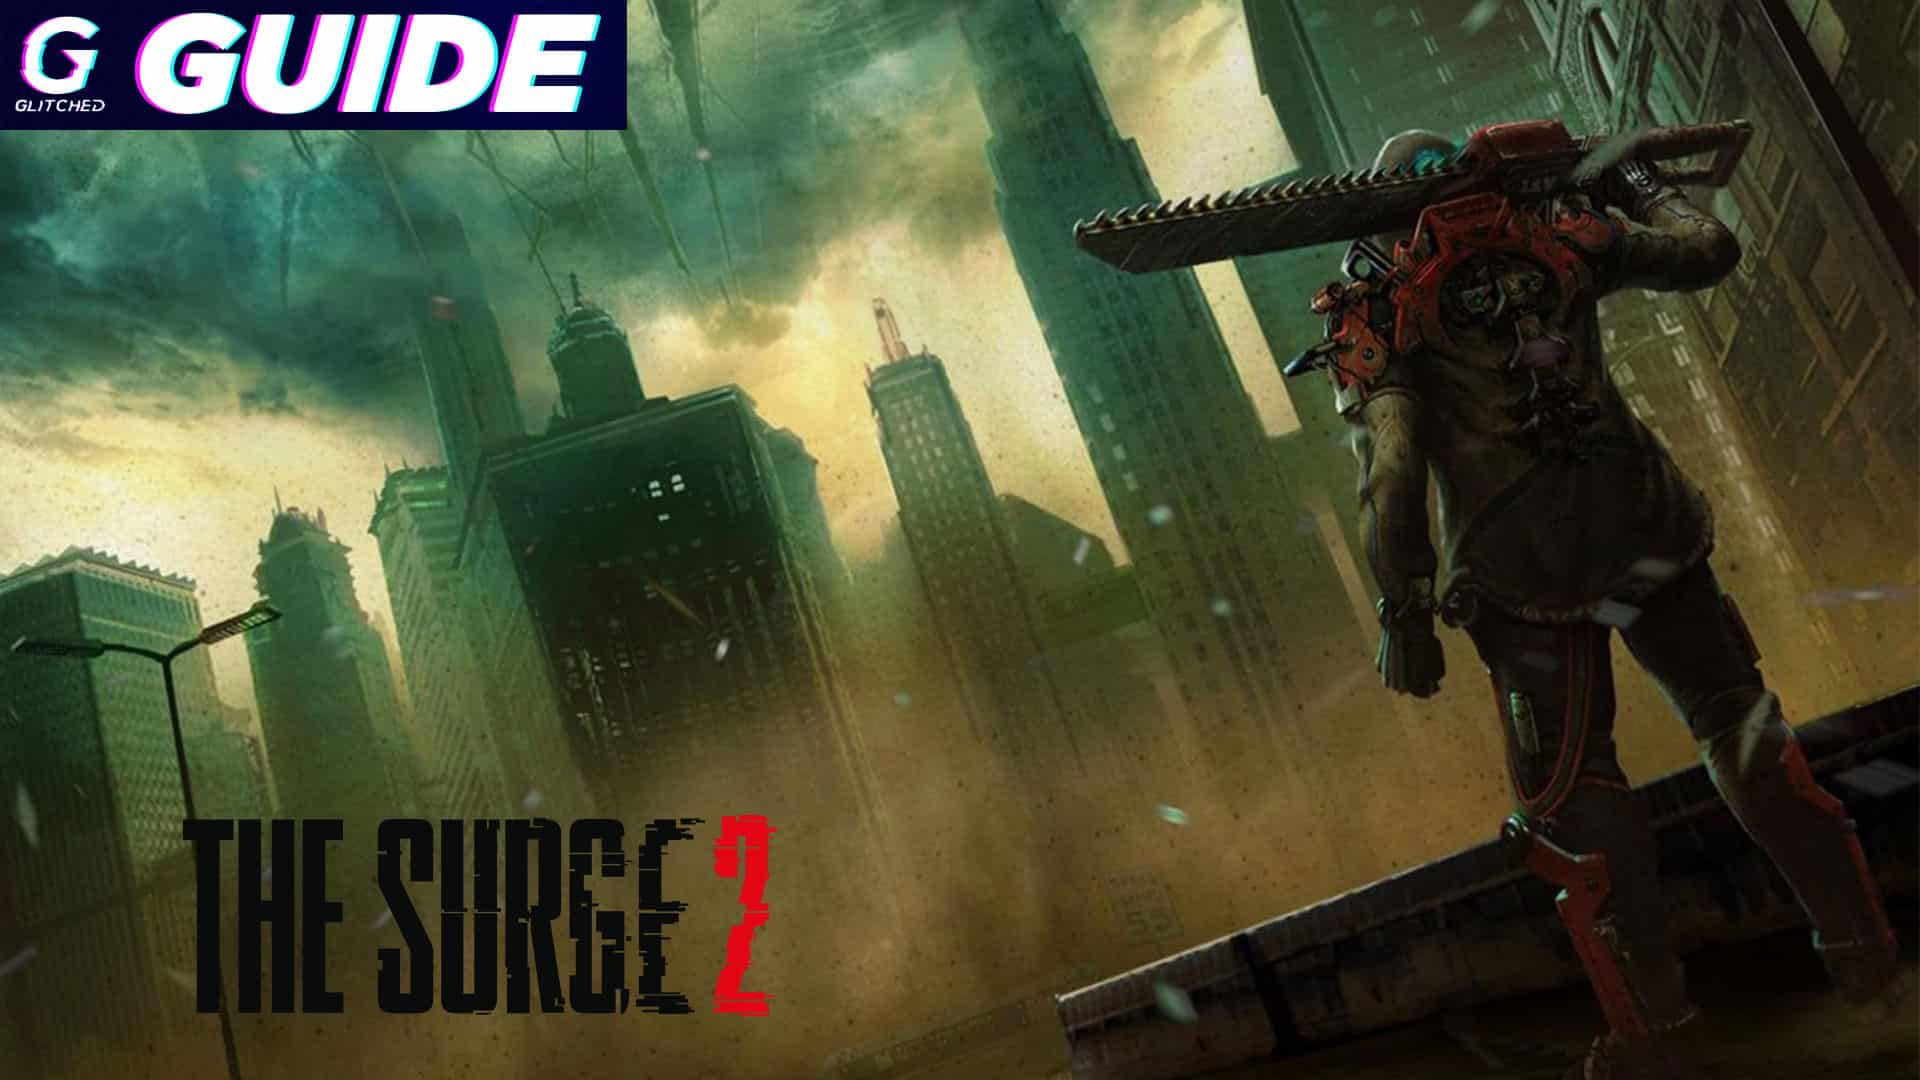 The Surge 2 boss guide brother eli Deck13 Focus Home Interactive